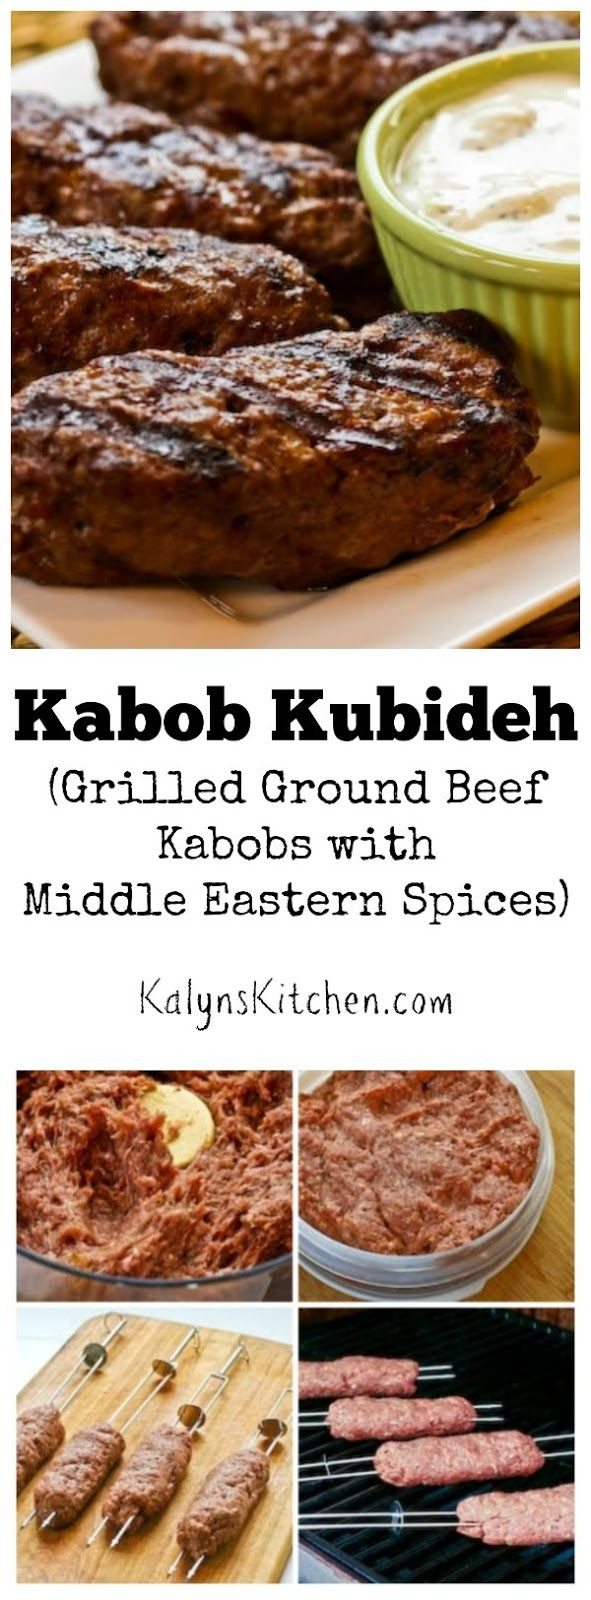 This Kabob Kubideh (or Grilled Ground Beef on Skewers with Middle Eastern Spices) is one of my favorite things to make with ground beef. You can cook in a stove-top grill pan, George Foreman Grill, or under the broiler if it's not grilling weather outside.  (Low-Carb, Gluten-Free, Paleo) [from KalynsKitchen.com]